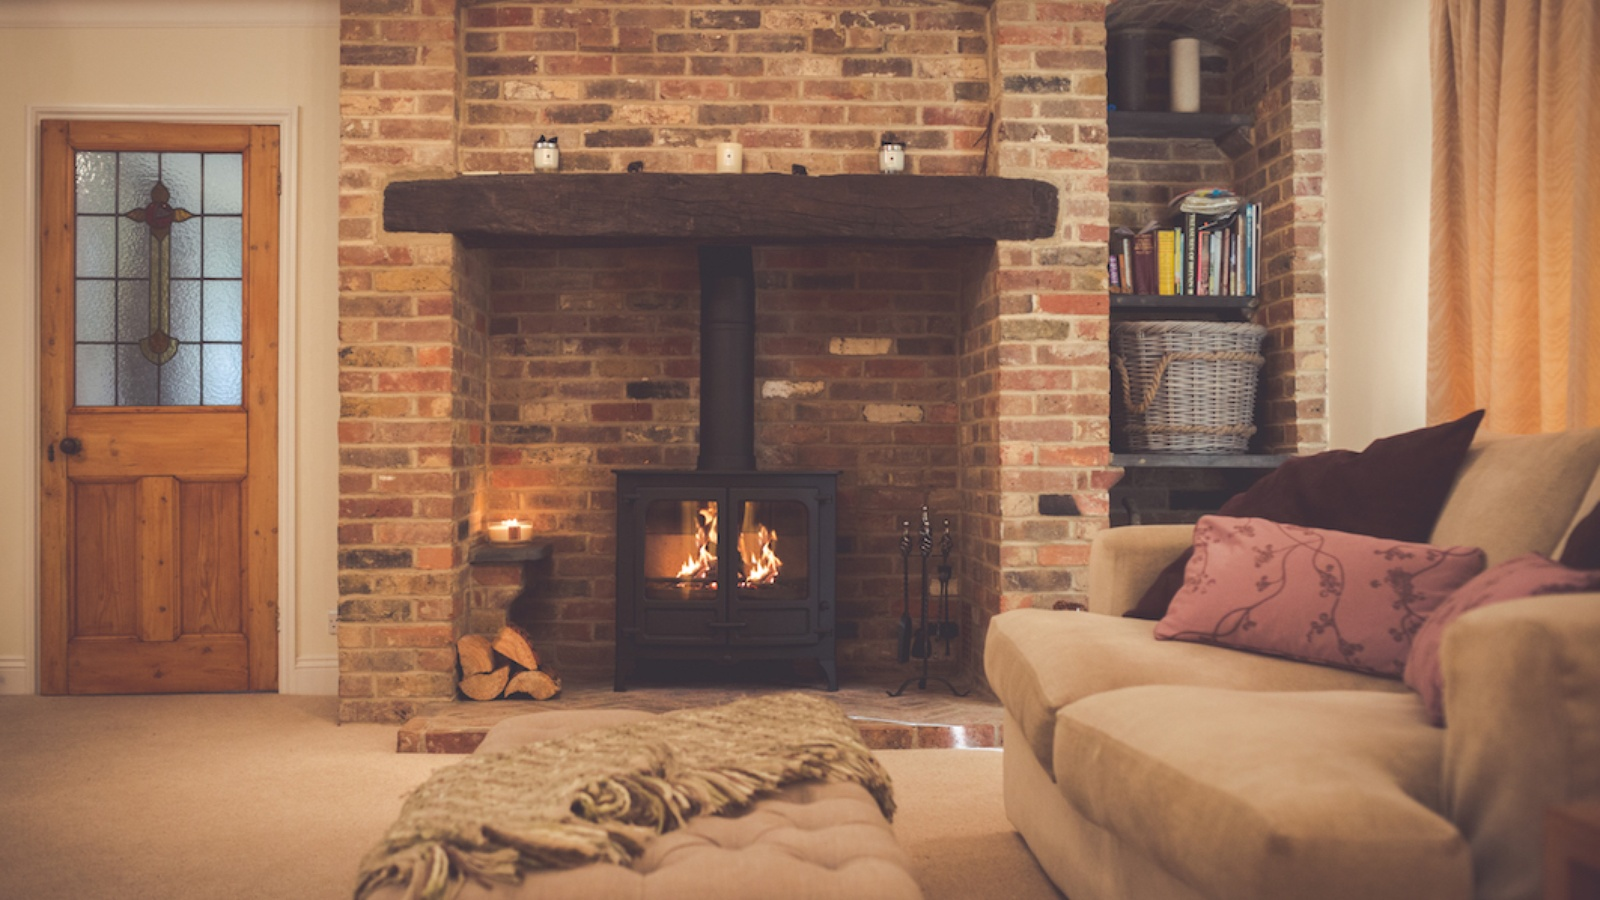 The Charnwood Island 3 12kW stove creates a timeless classic fireplace feature.